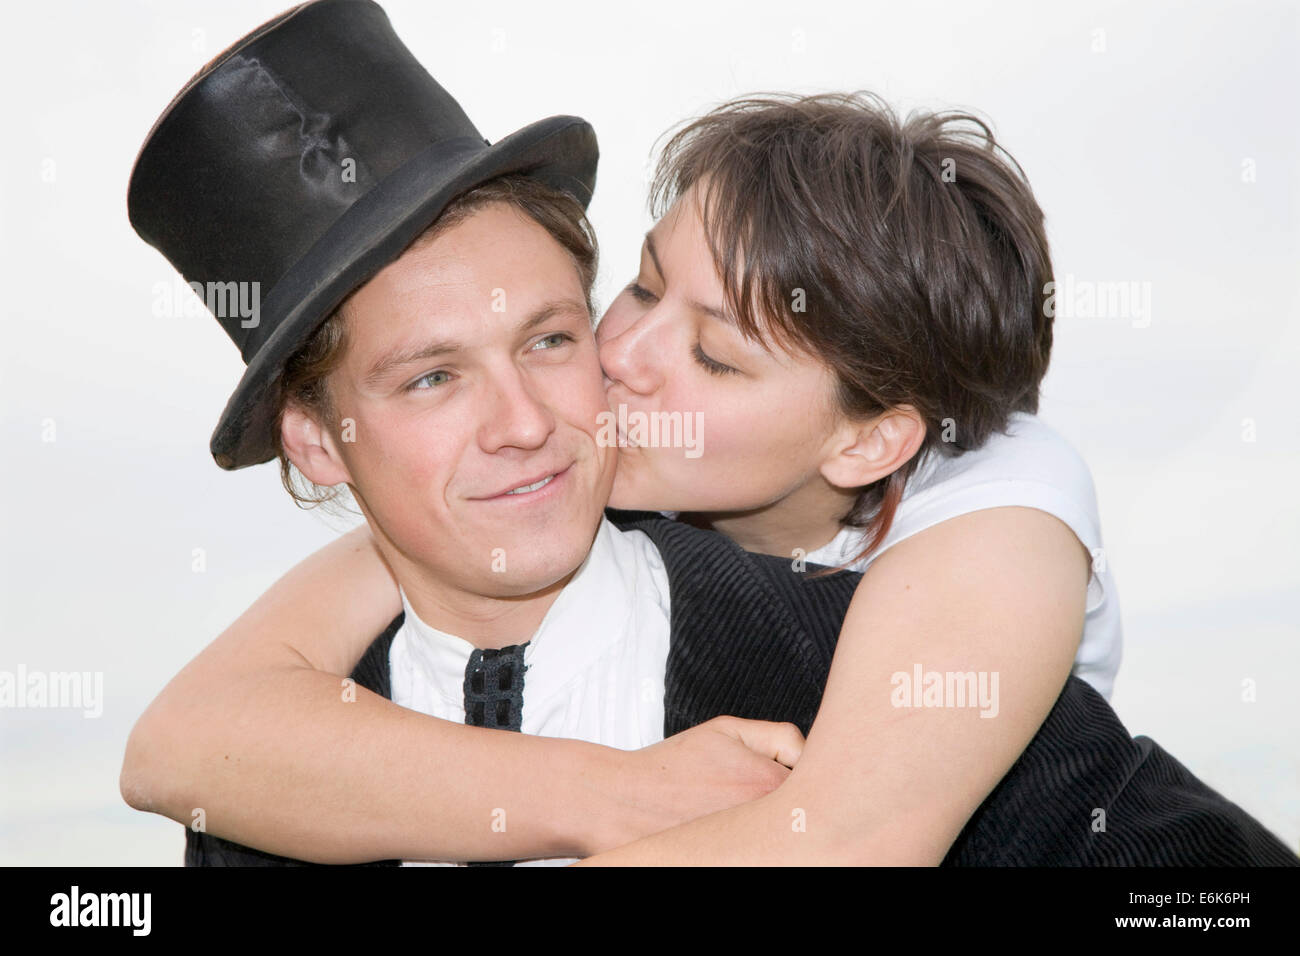 Young man wearing a top hat being tenderly kissed by his partner as he carries her piggyback Stock Photo